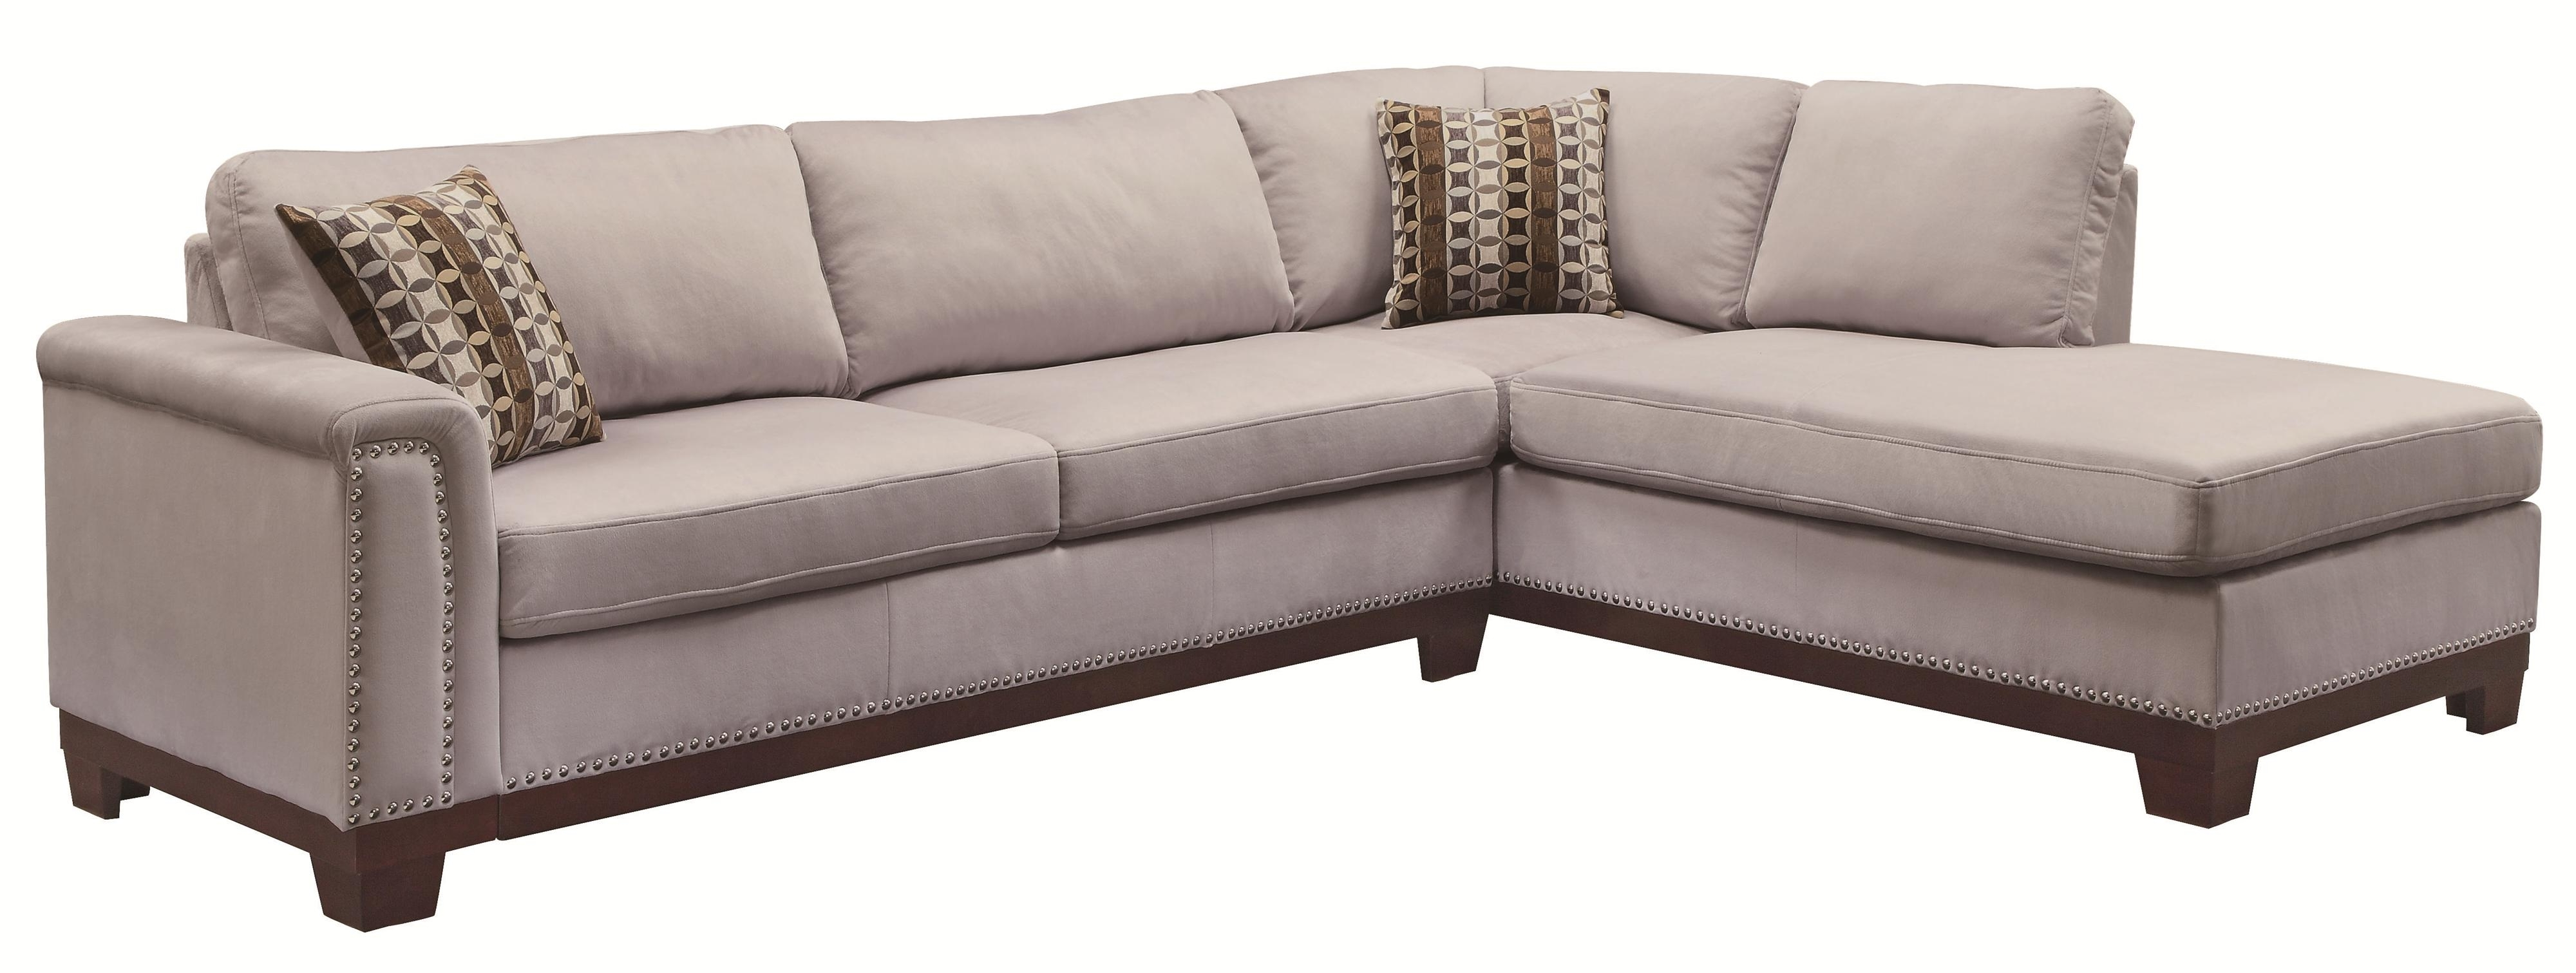 Current Stylish Couch With Chaise Lounge With Stylish Small Living Room Throughout Small Sofa Chaises (View 4 of 15)